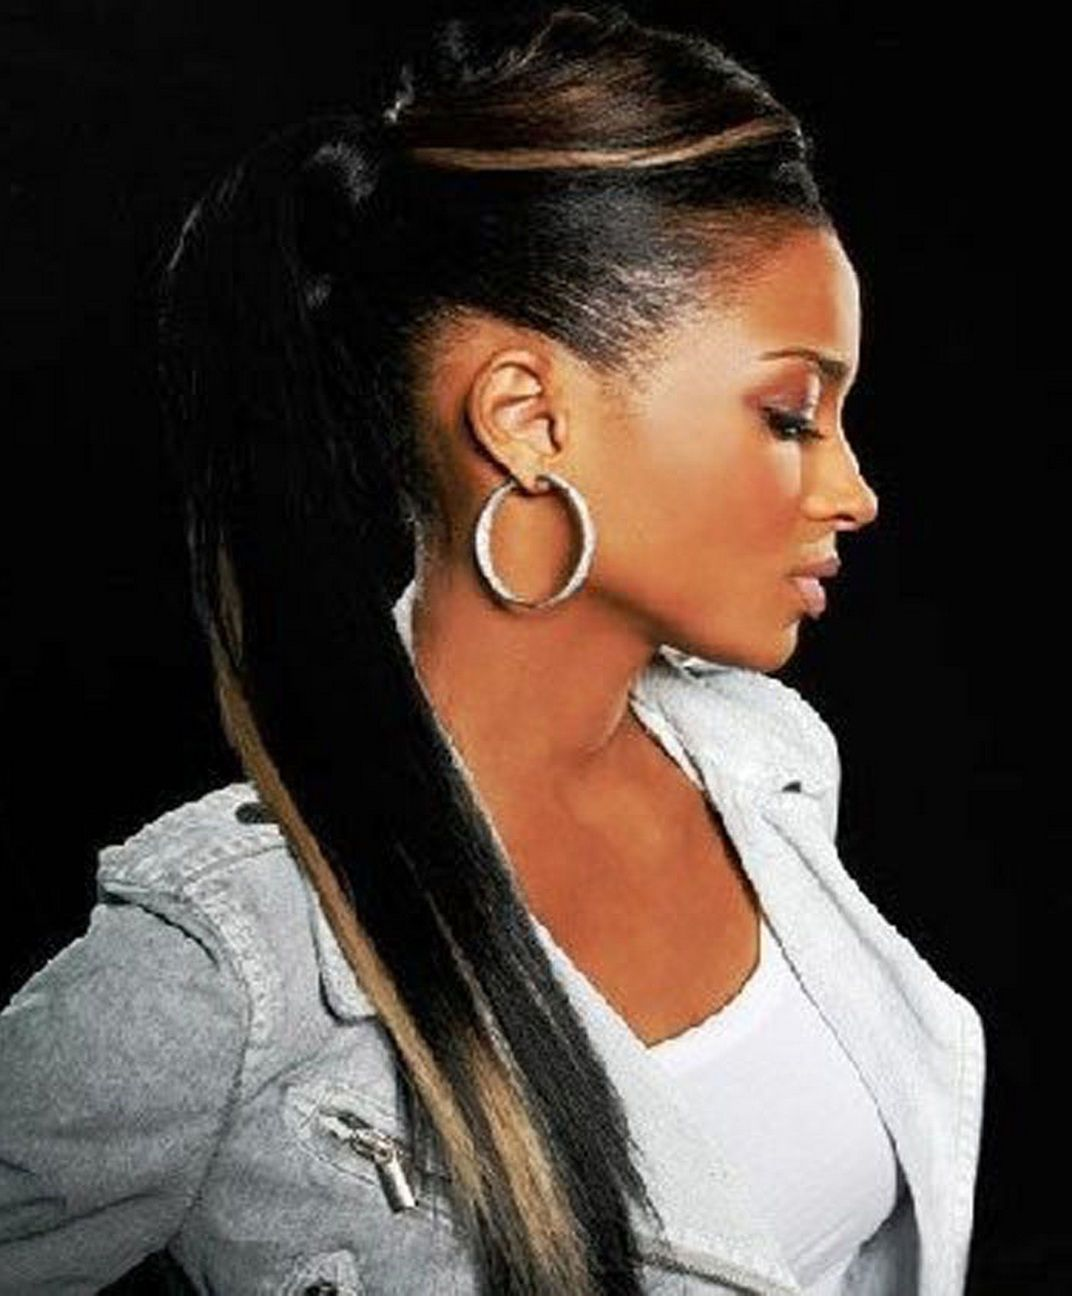 Black Ponytail Hairstyles image result for side ponytail black girl Cool African American Weave Ponytail Hairstylesjpg 1072